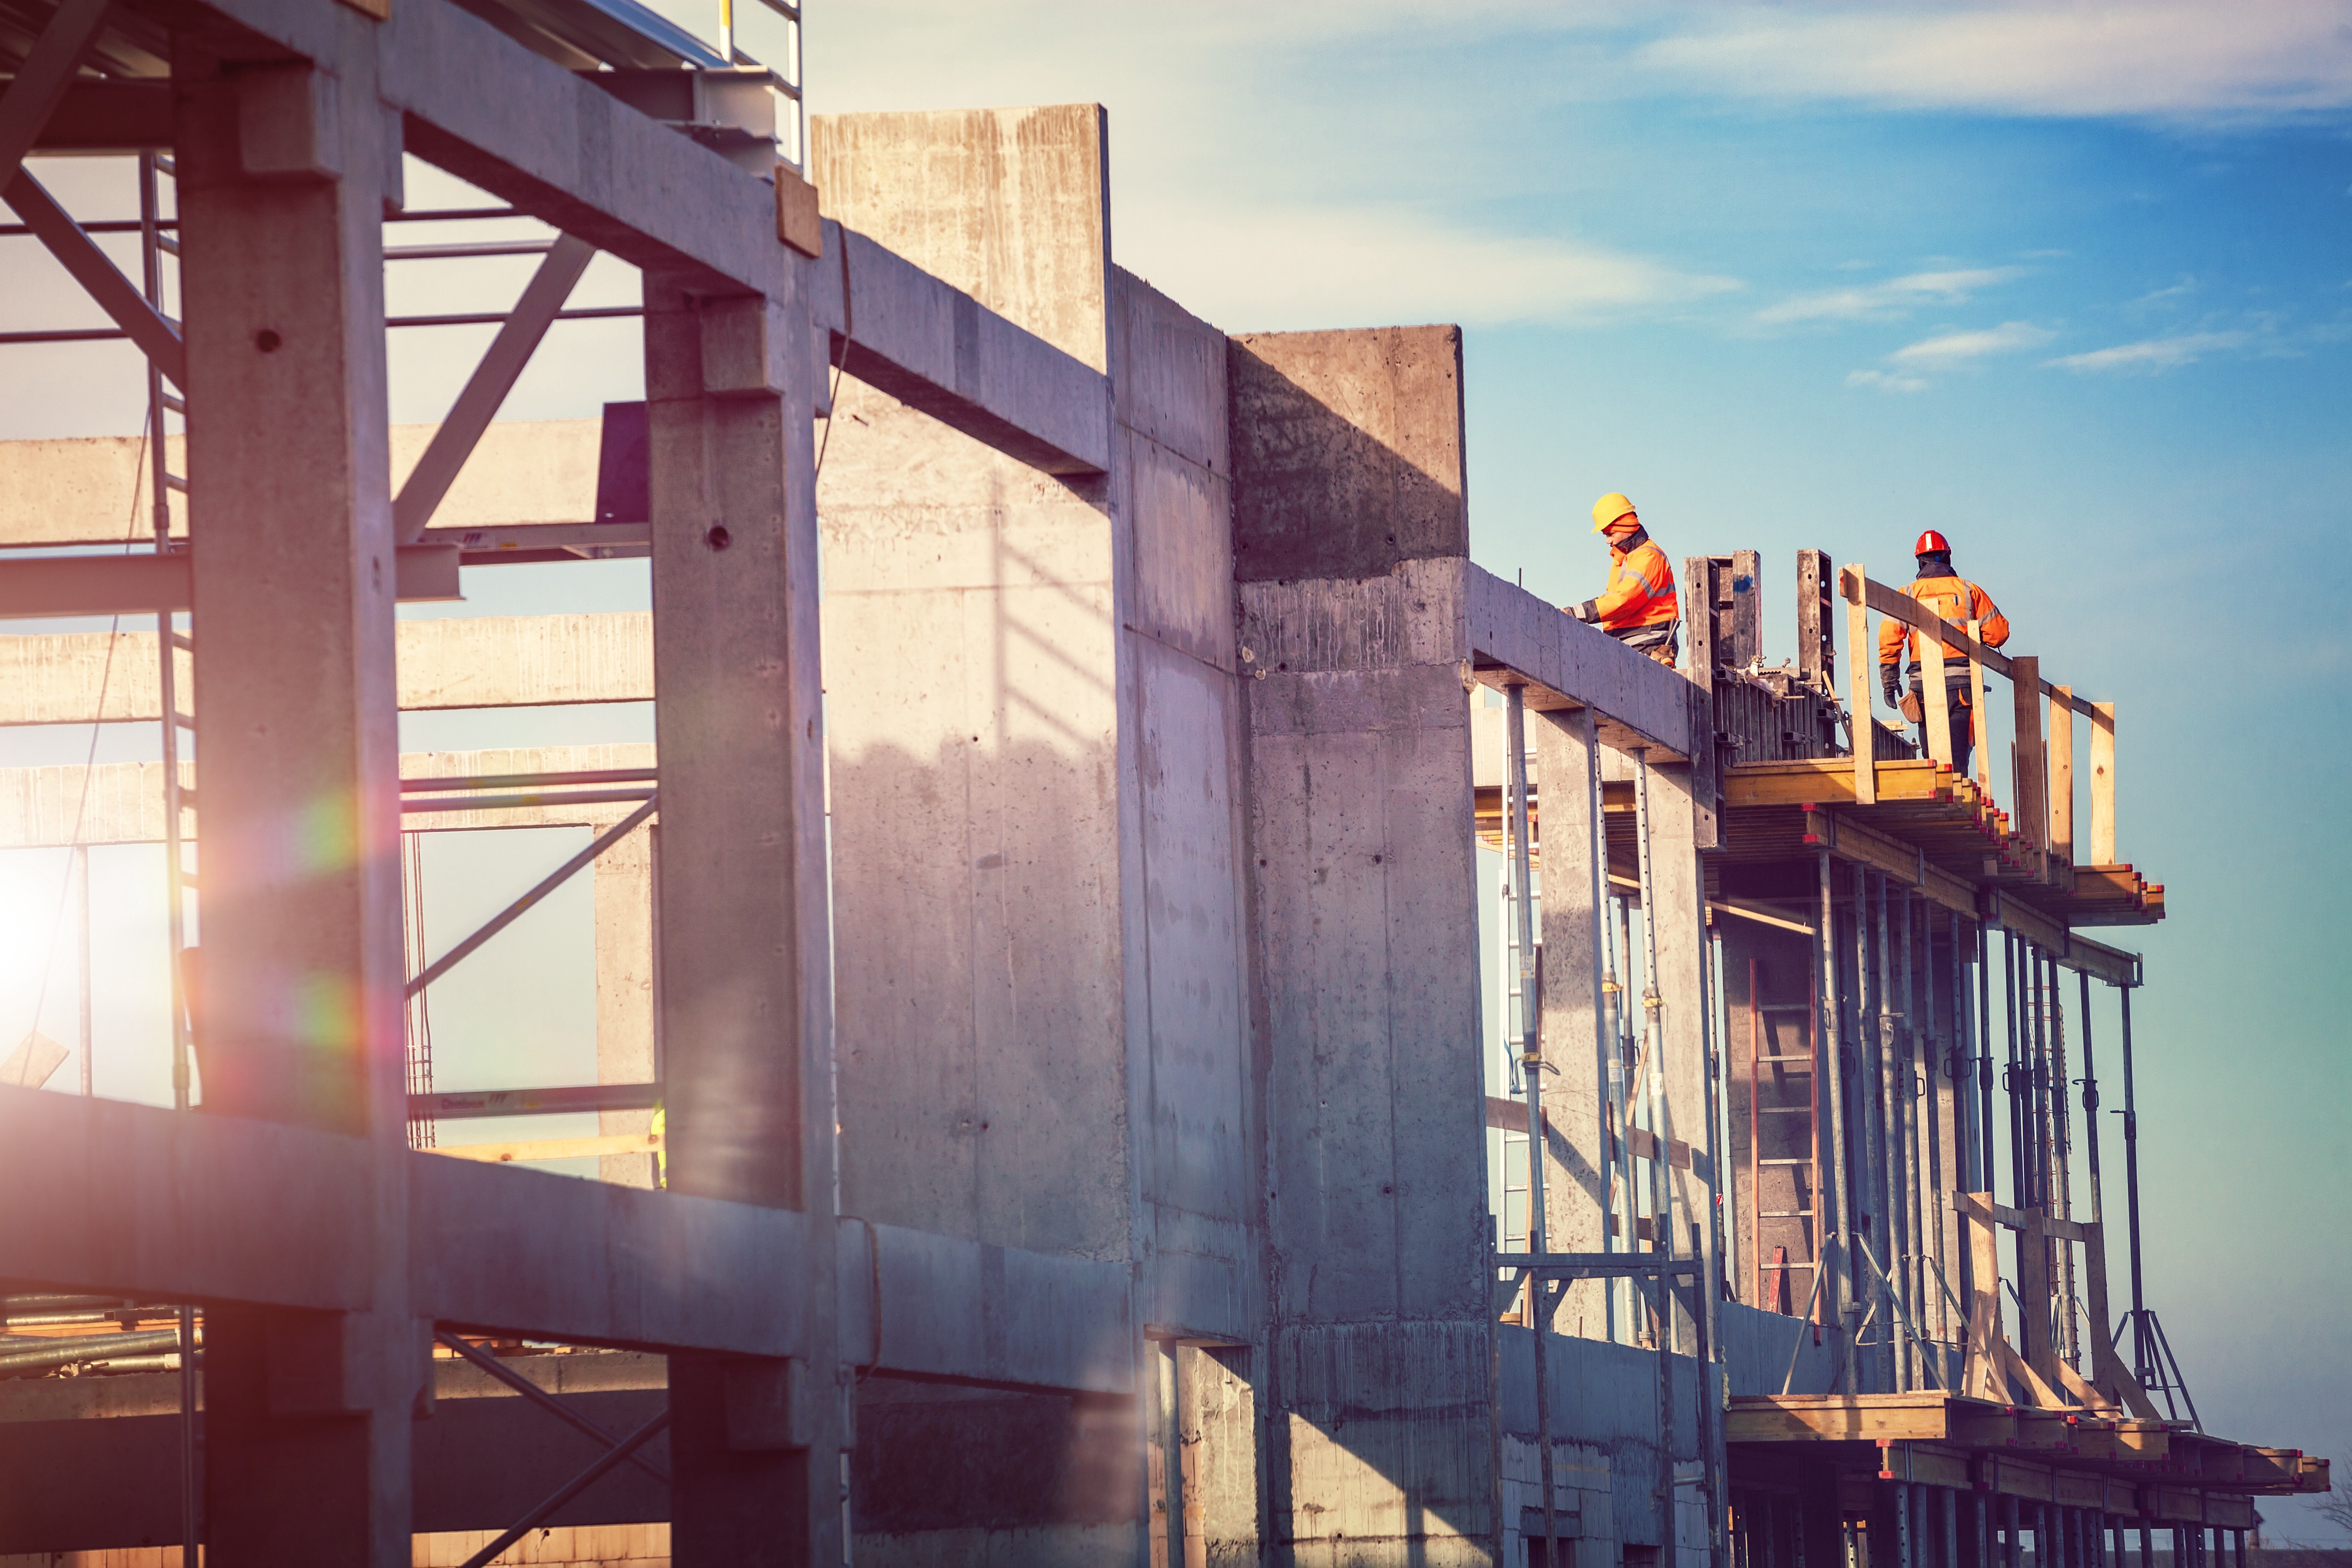 Two construction workers are working on top of a partially constructed concrete structure.